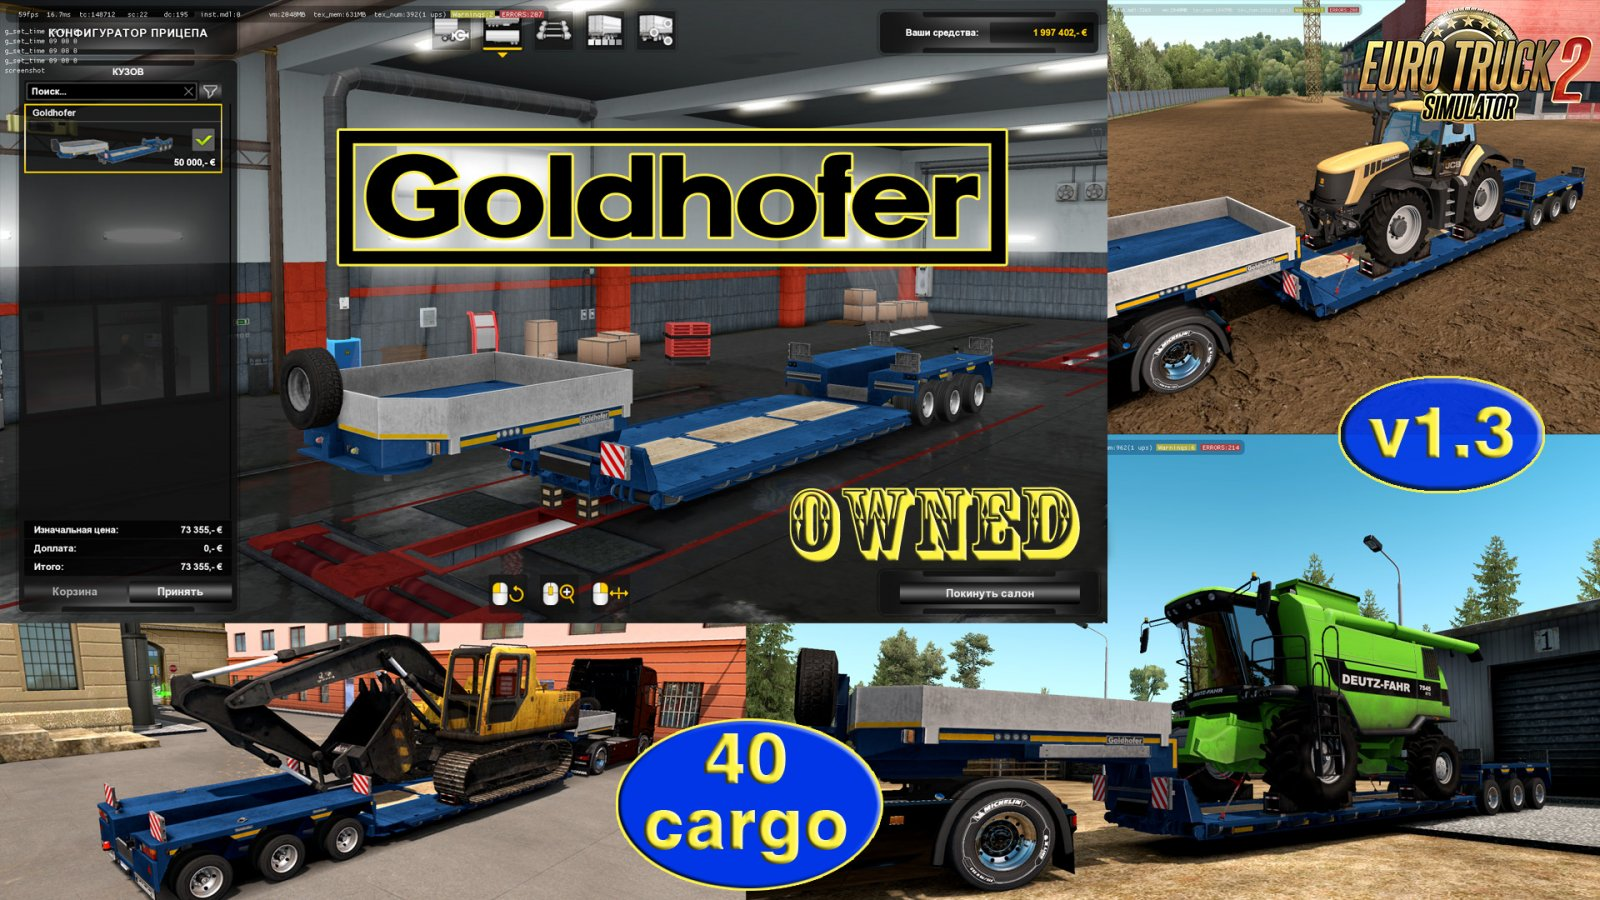 Ownable trailer Goldhofer v1.3 by Jazzycat